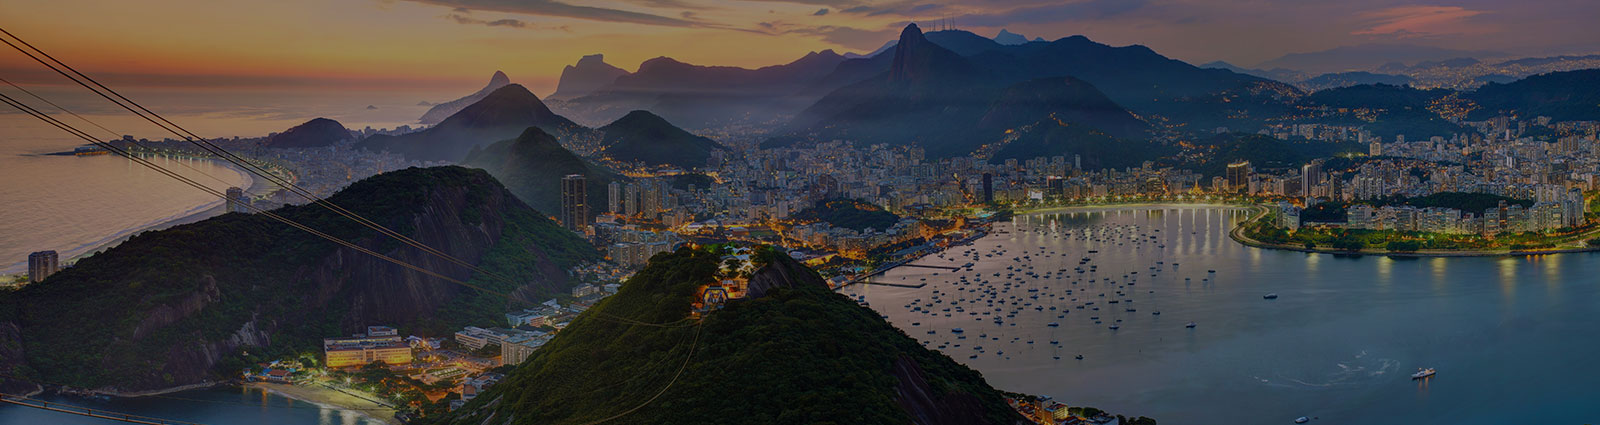 Sunset in Rio de Janeiro, Brazil on the Sugar Loaf Mountain.